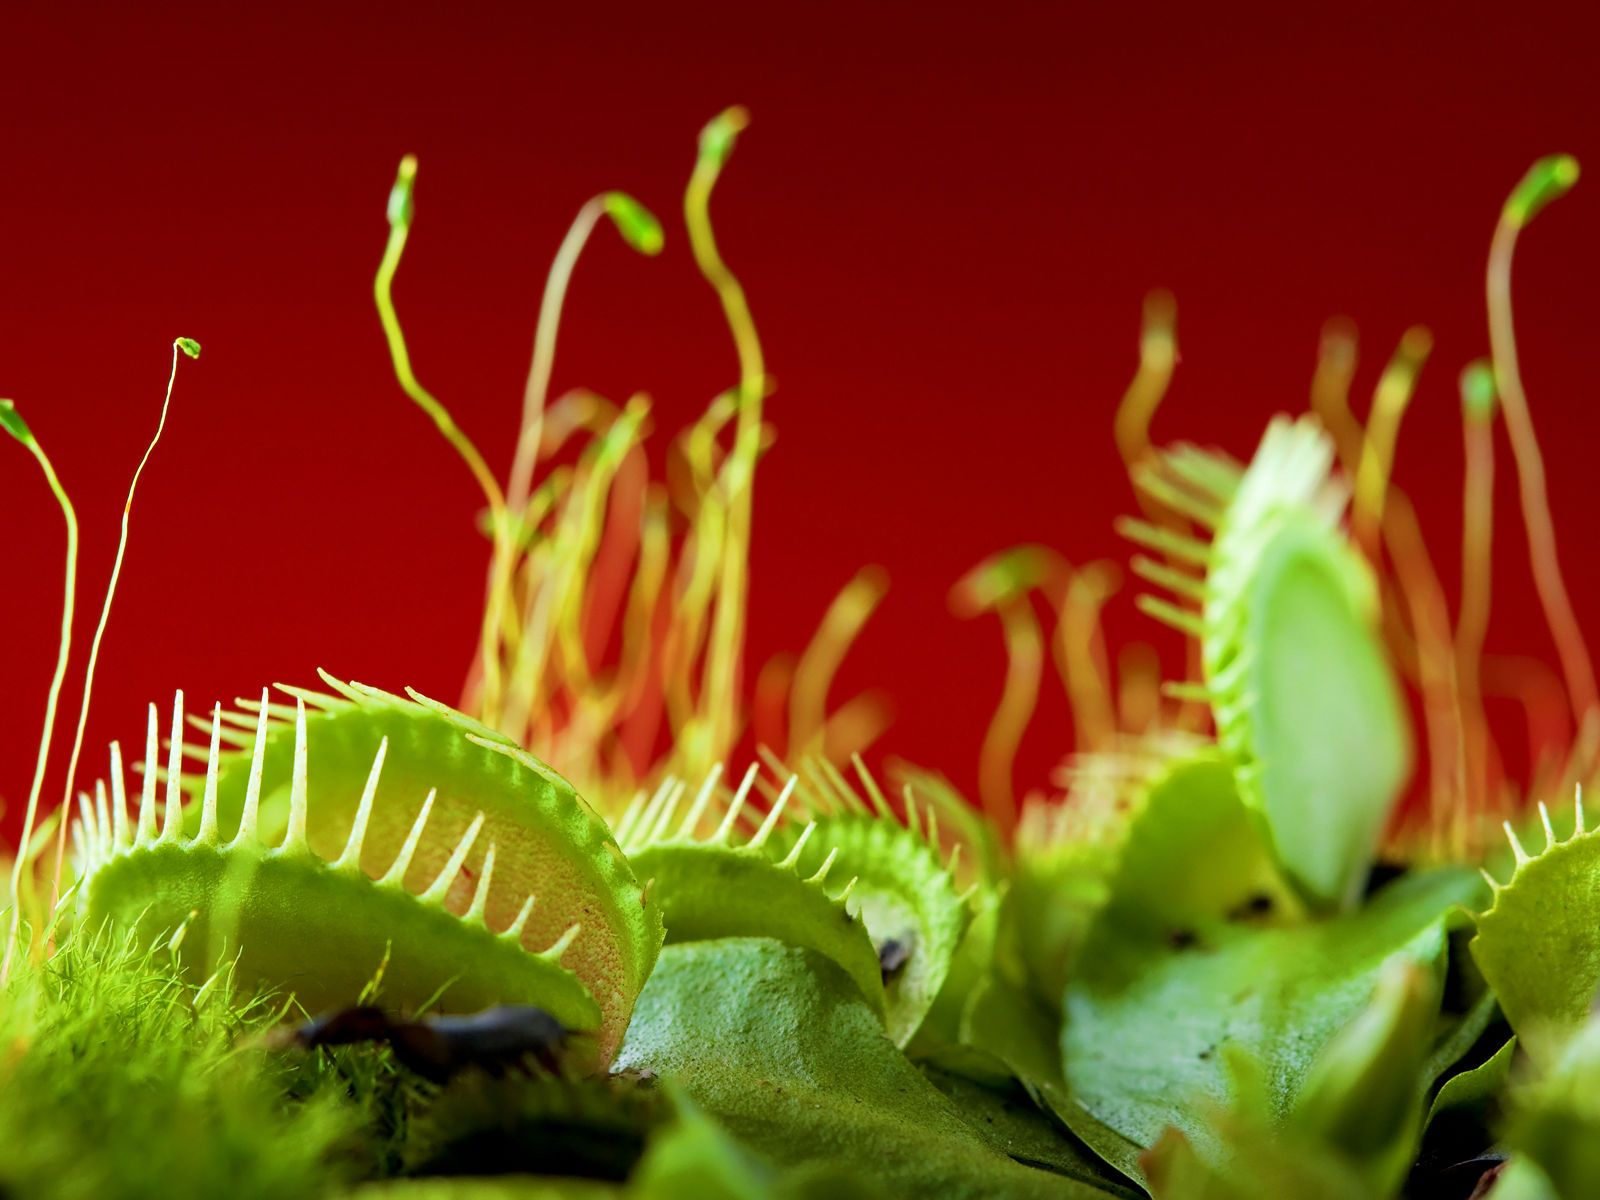 Fonds Dcran Plante Carnivore Maximumwallhd Little Shop Plant Flytrap Robots Can Hunt And Catch Bugs For Meals